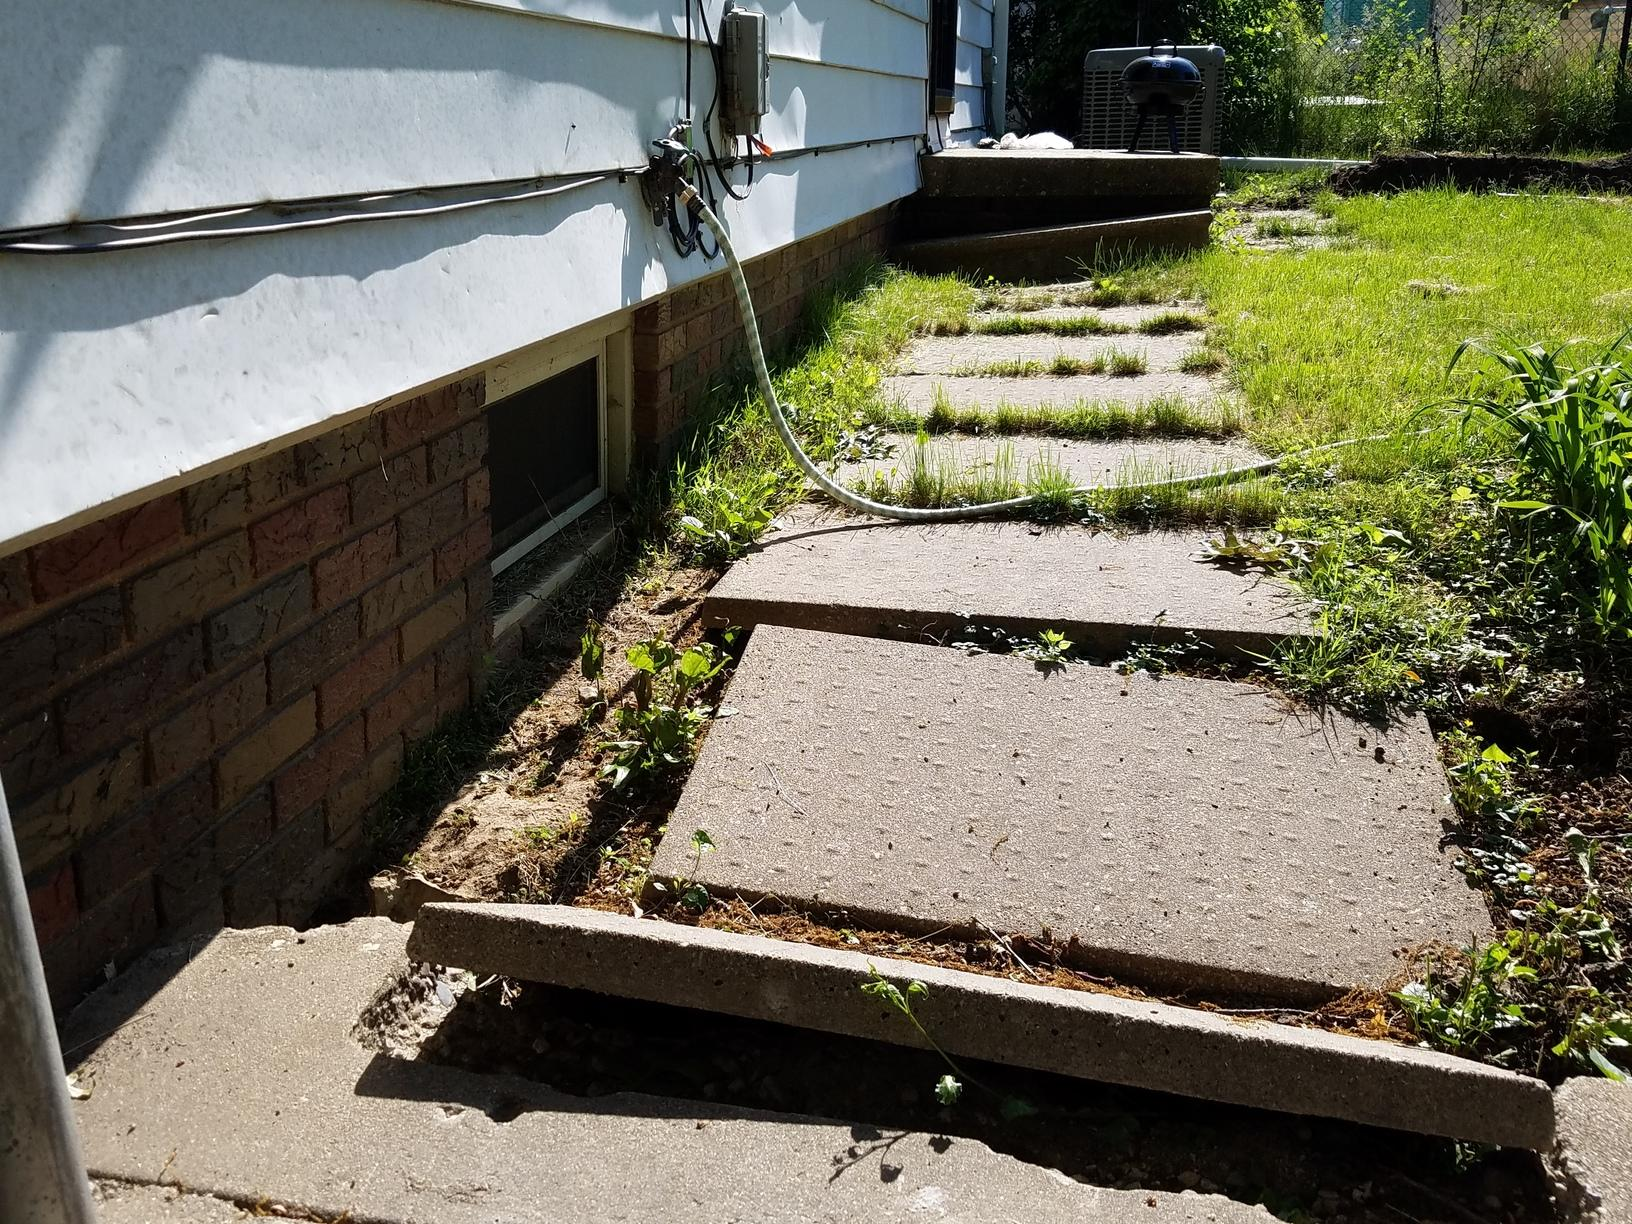 The sidewalk sinking and cracking due to foundation issues.